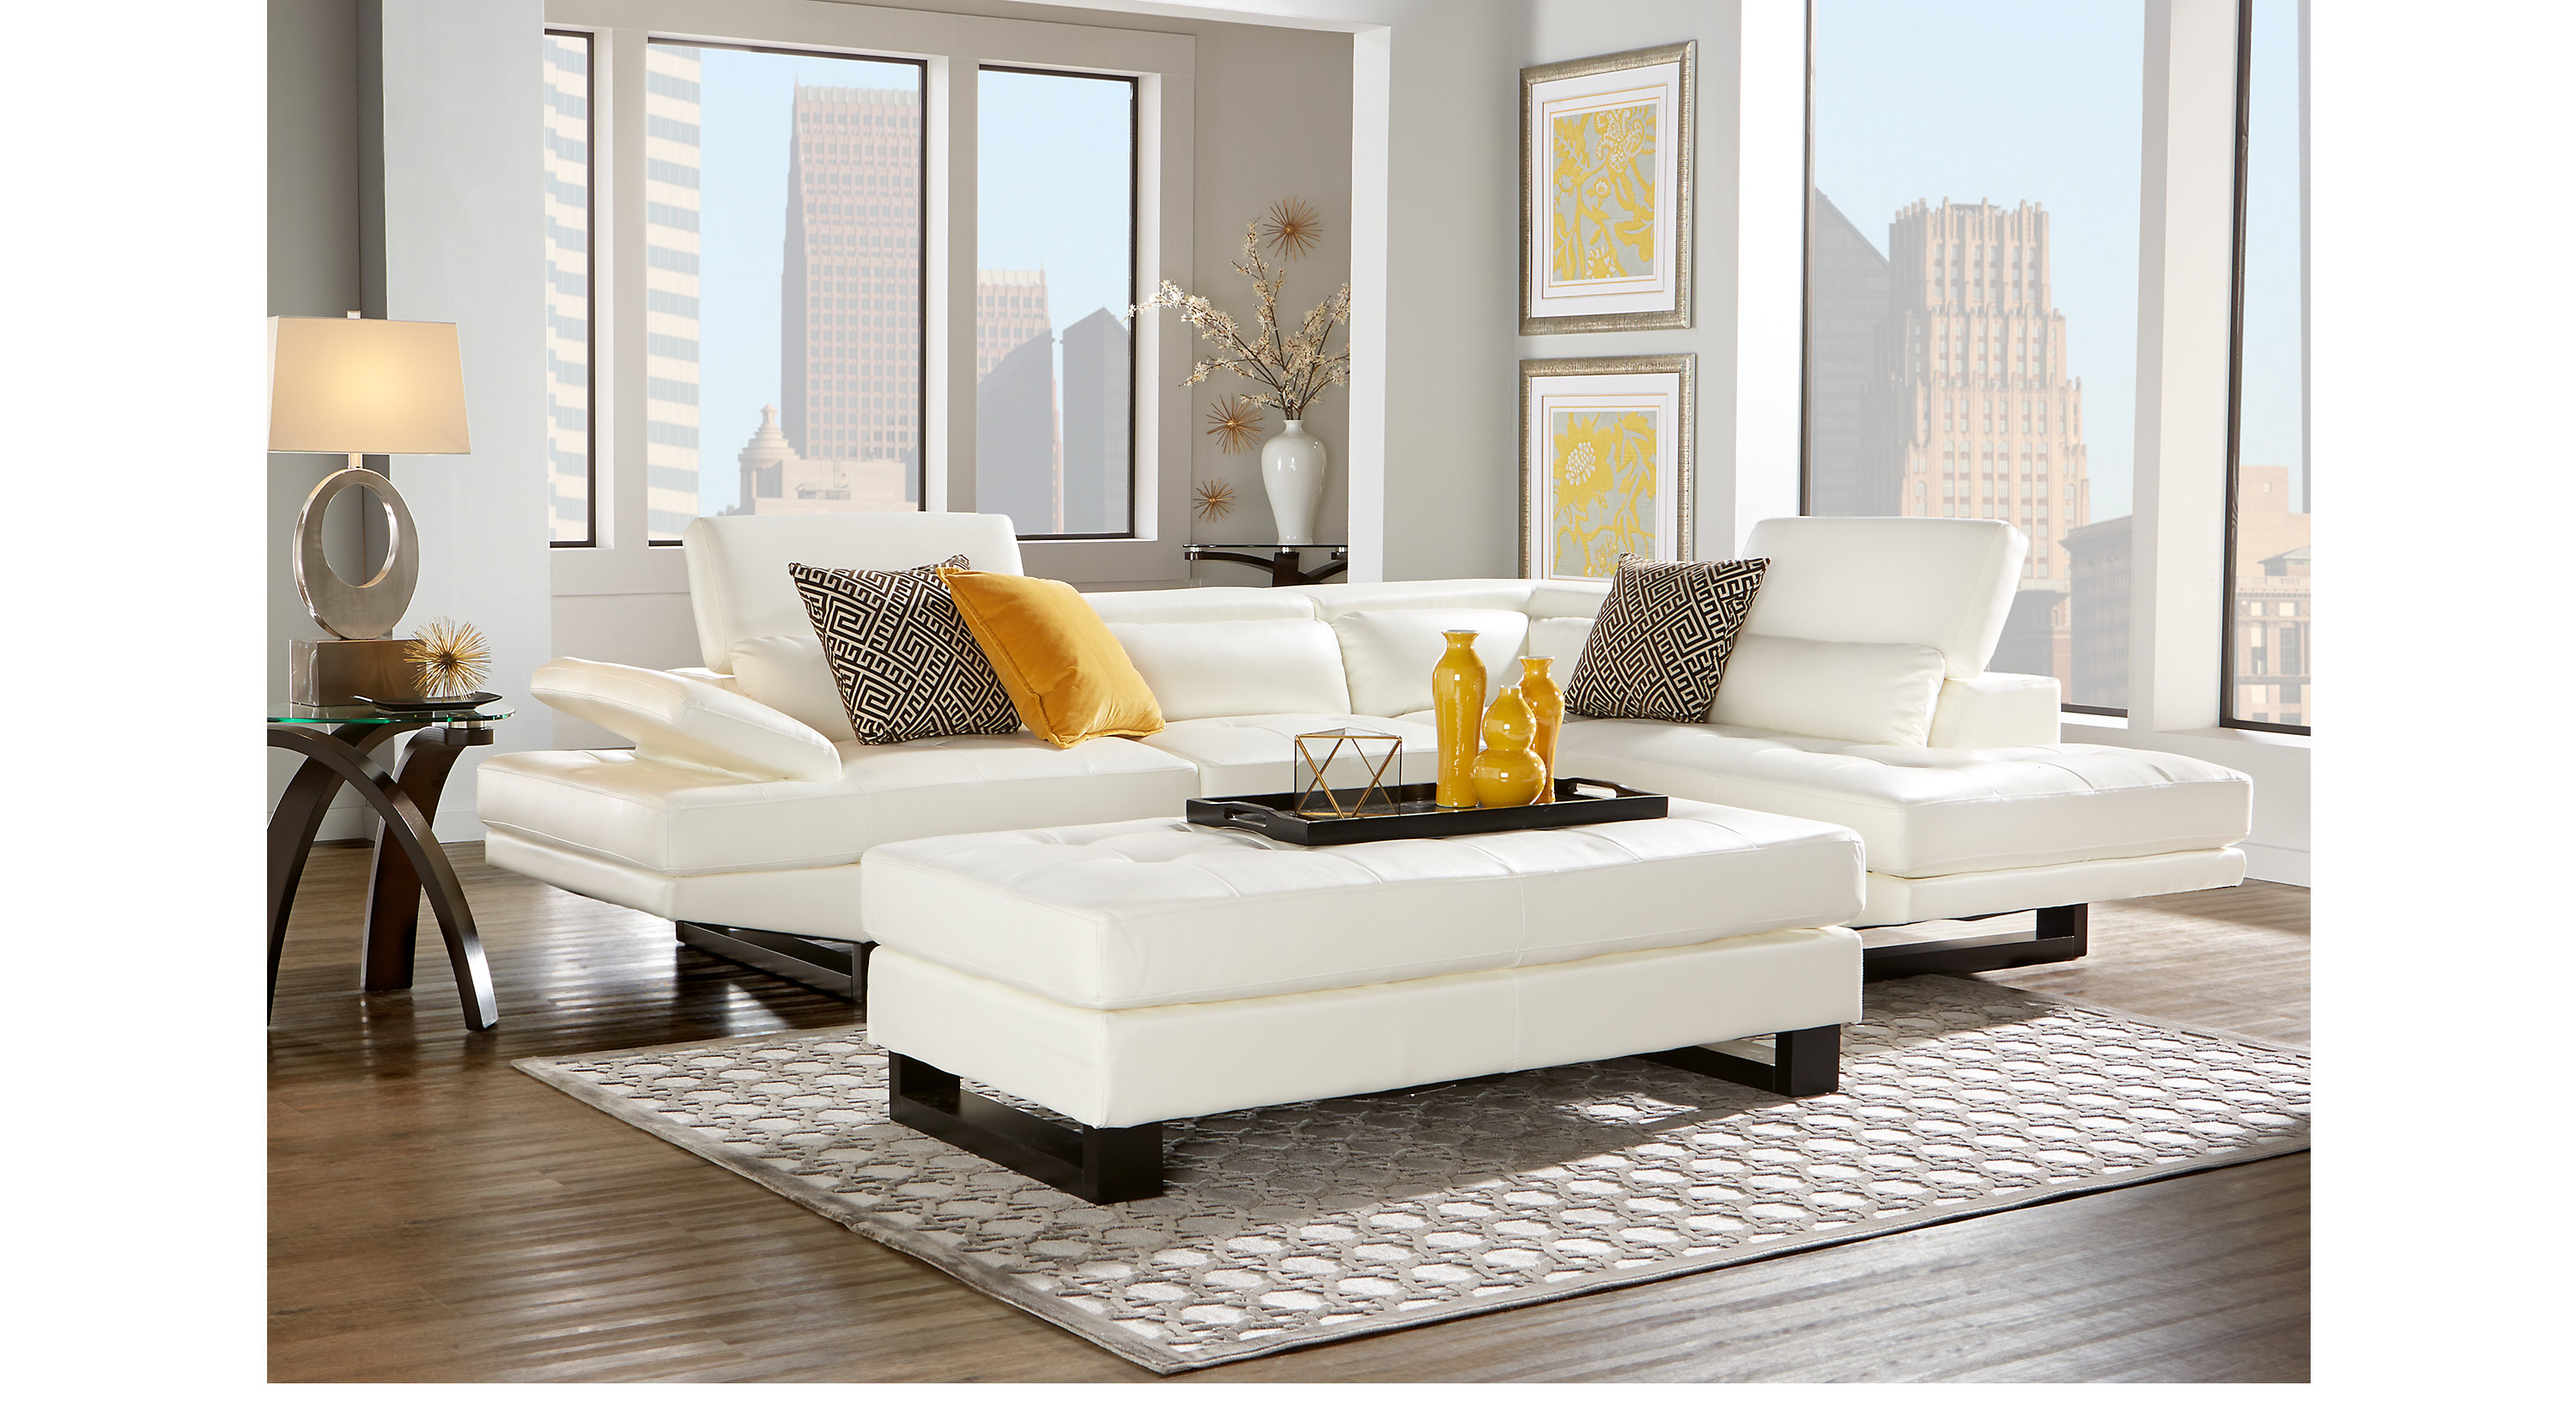 $1,449.99 - Shiloh White 4 Pc Sectional Living Room - Contemporary ...